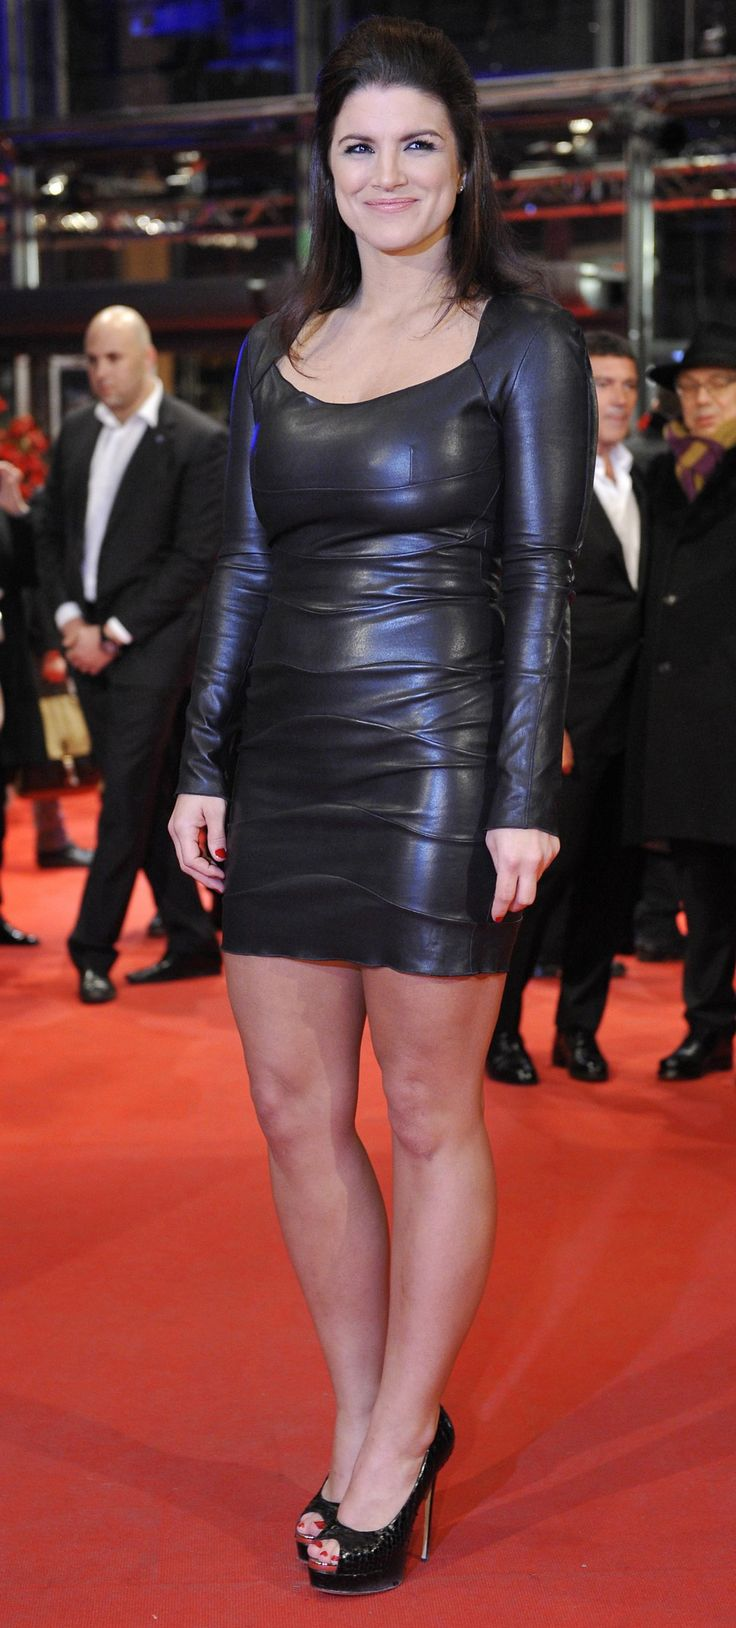 Gina Carano nudes (37 fotos), Is a cute Fappening, Instagram, panties 2015